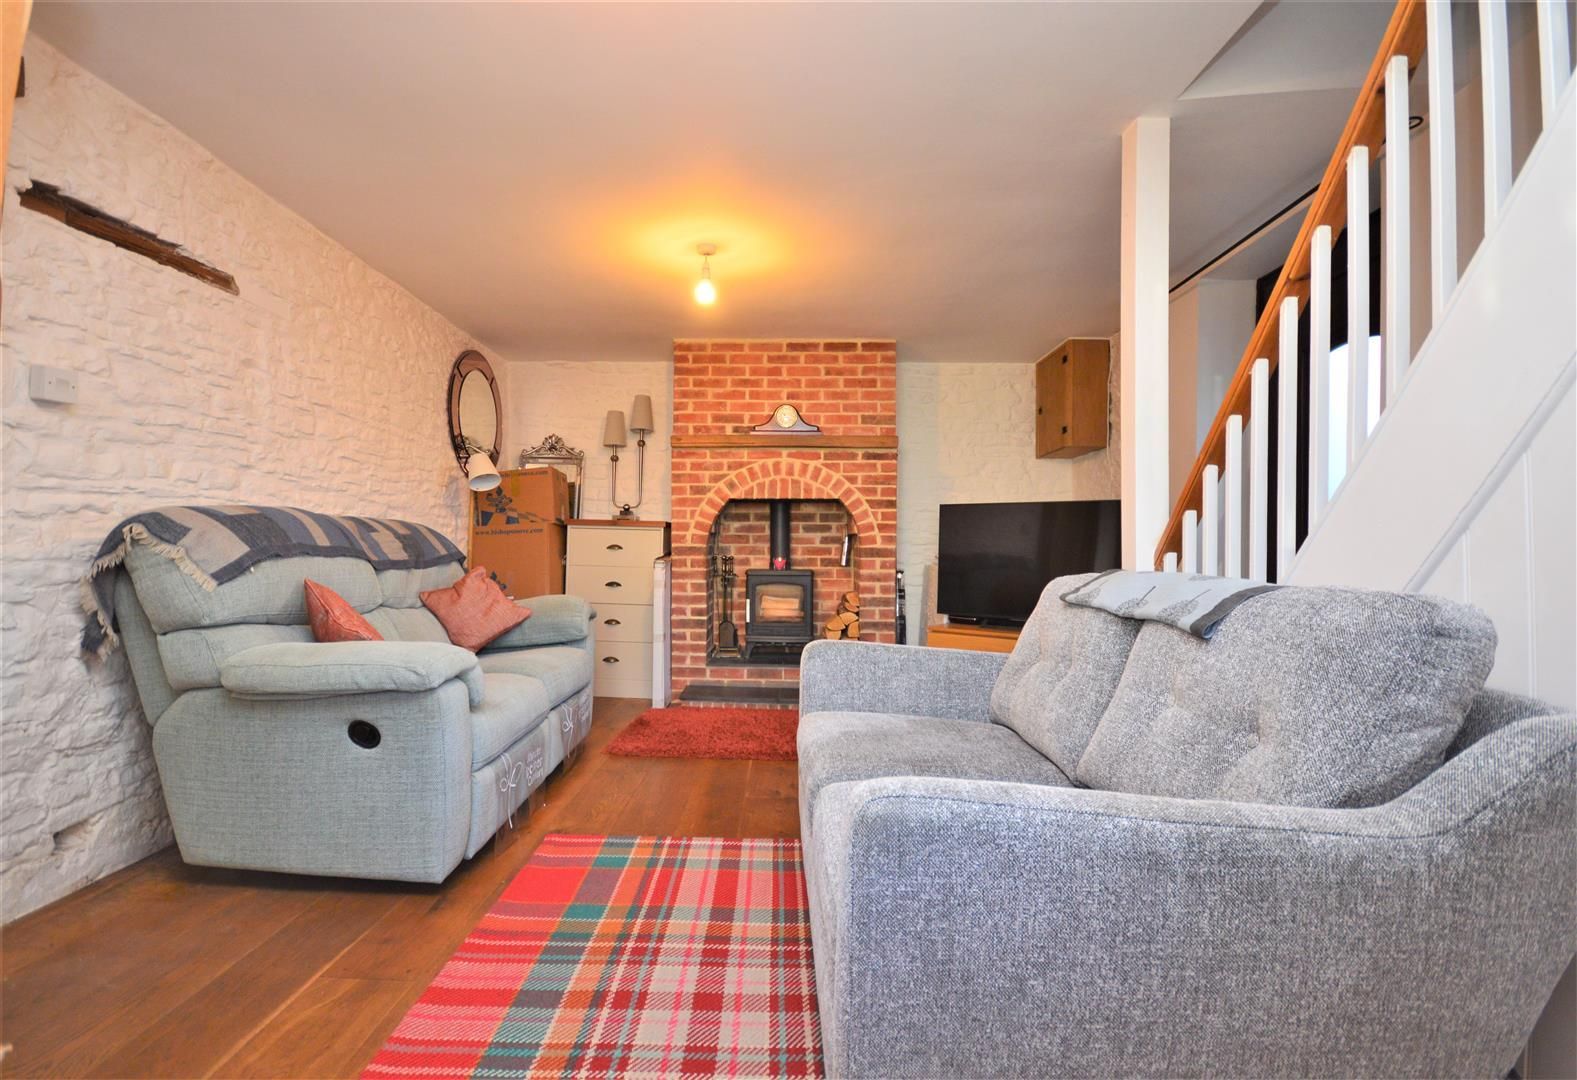 1 bed end-of-terrace for sale in Callow 2